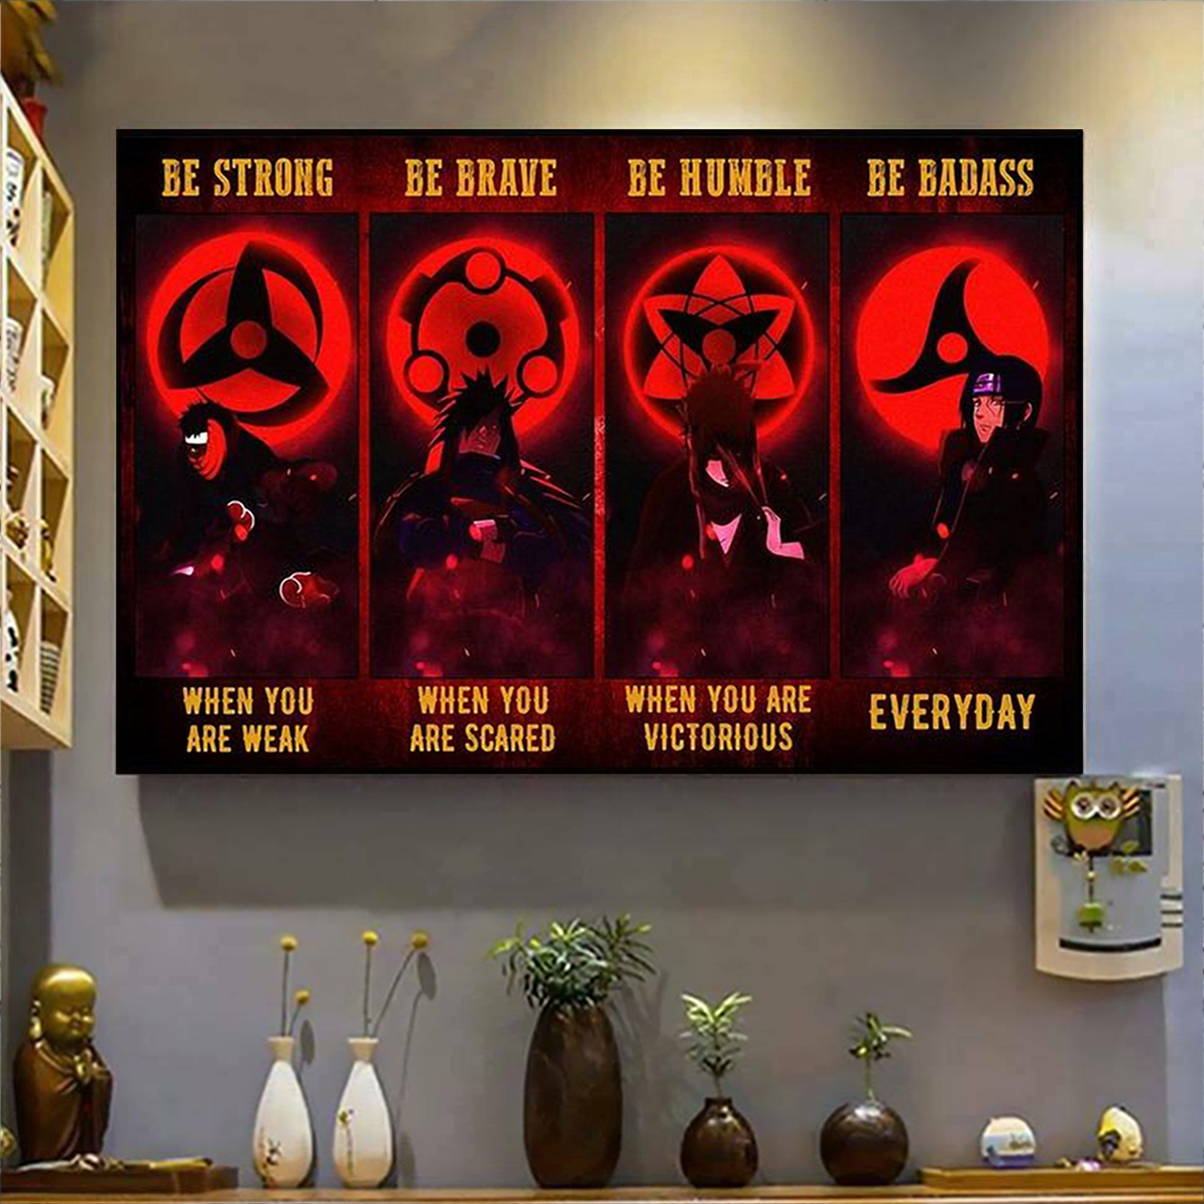 Uchiha be strong be brave be humble be badass poster A2